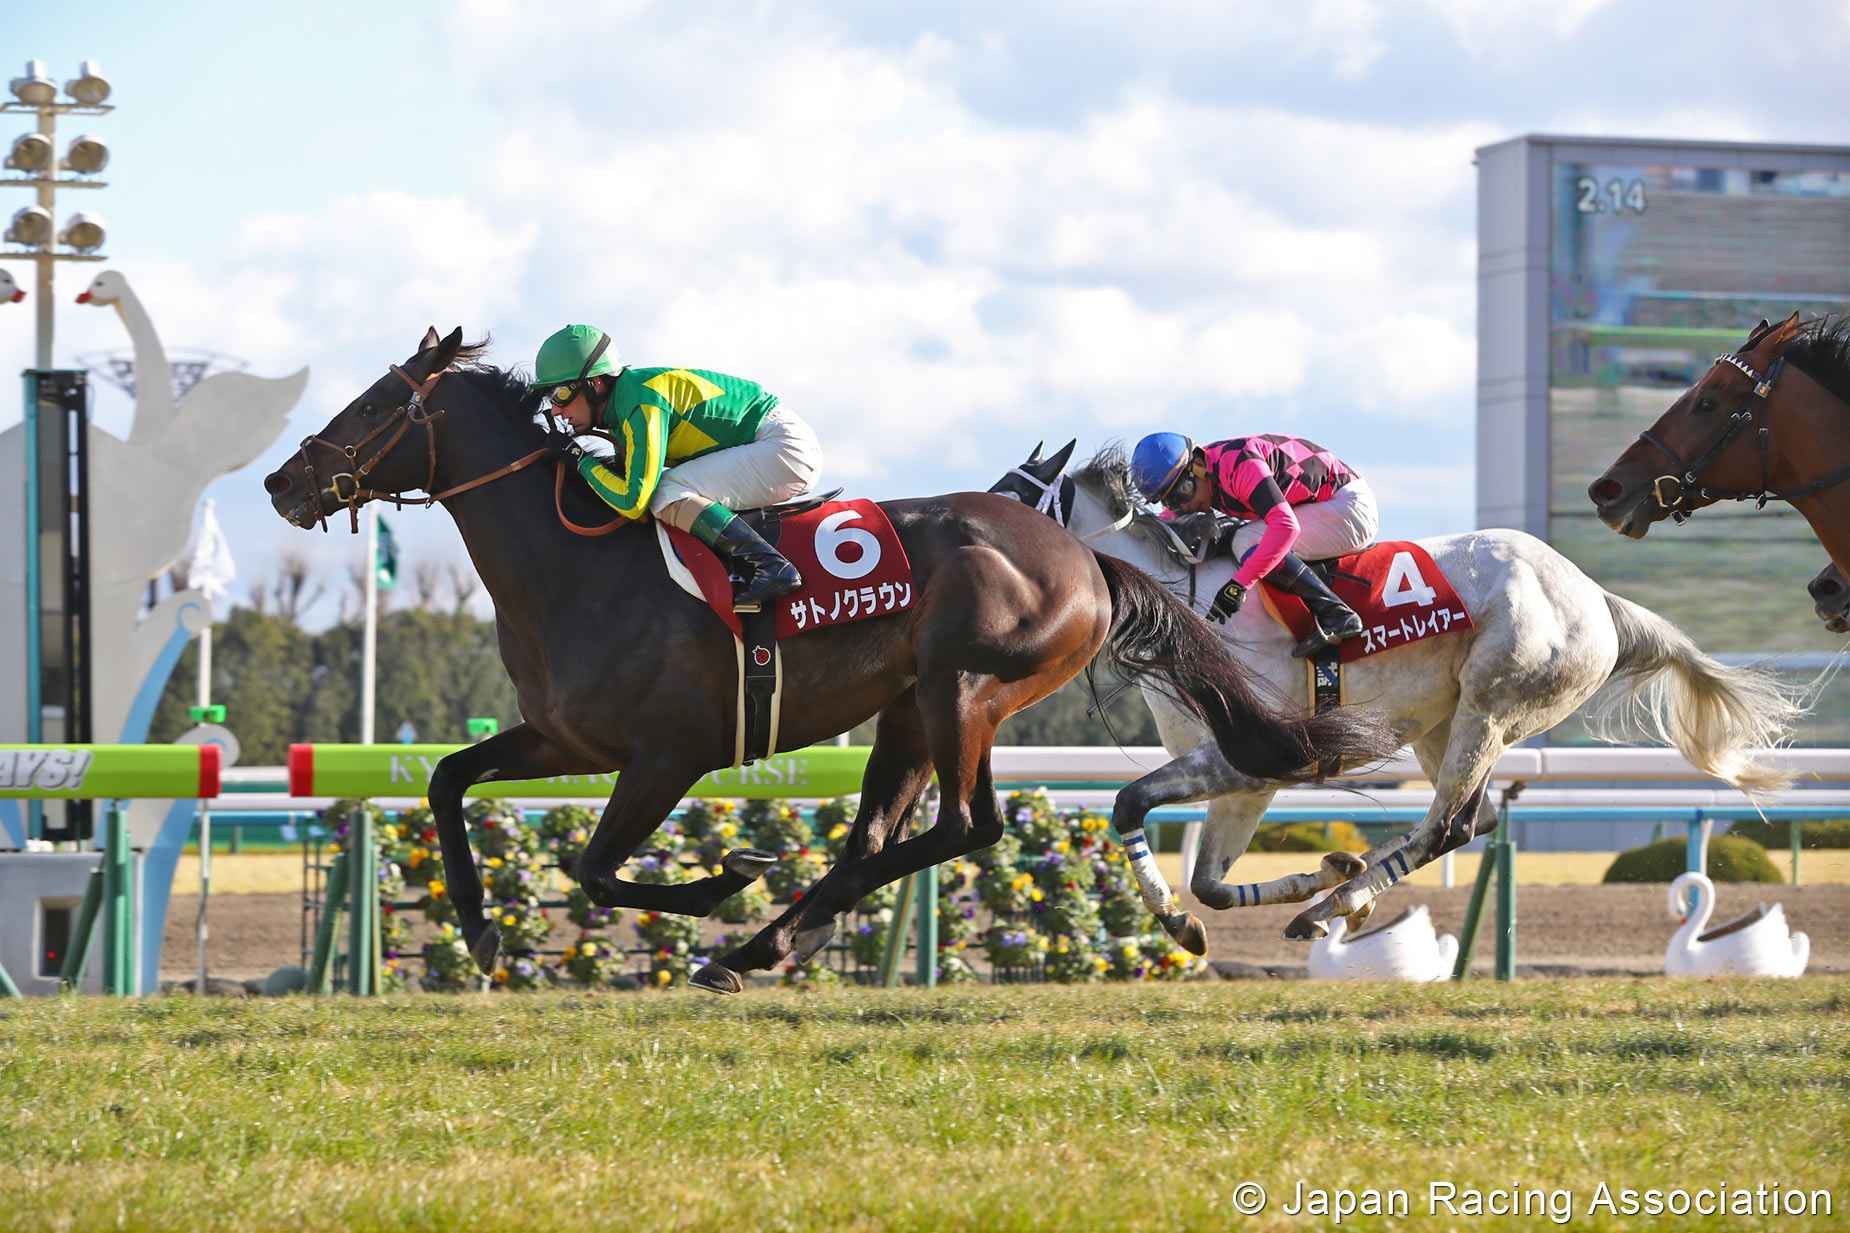 Best of the week: Satono Crown (Mirco Demuro) puts up the highest-rated performance in the G2 Kyoto Kinen. Photo: Japan Racing Association